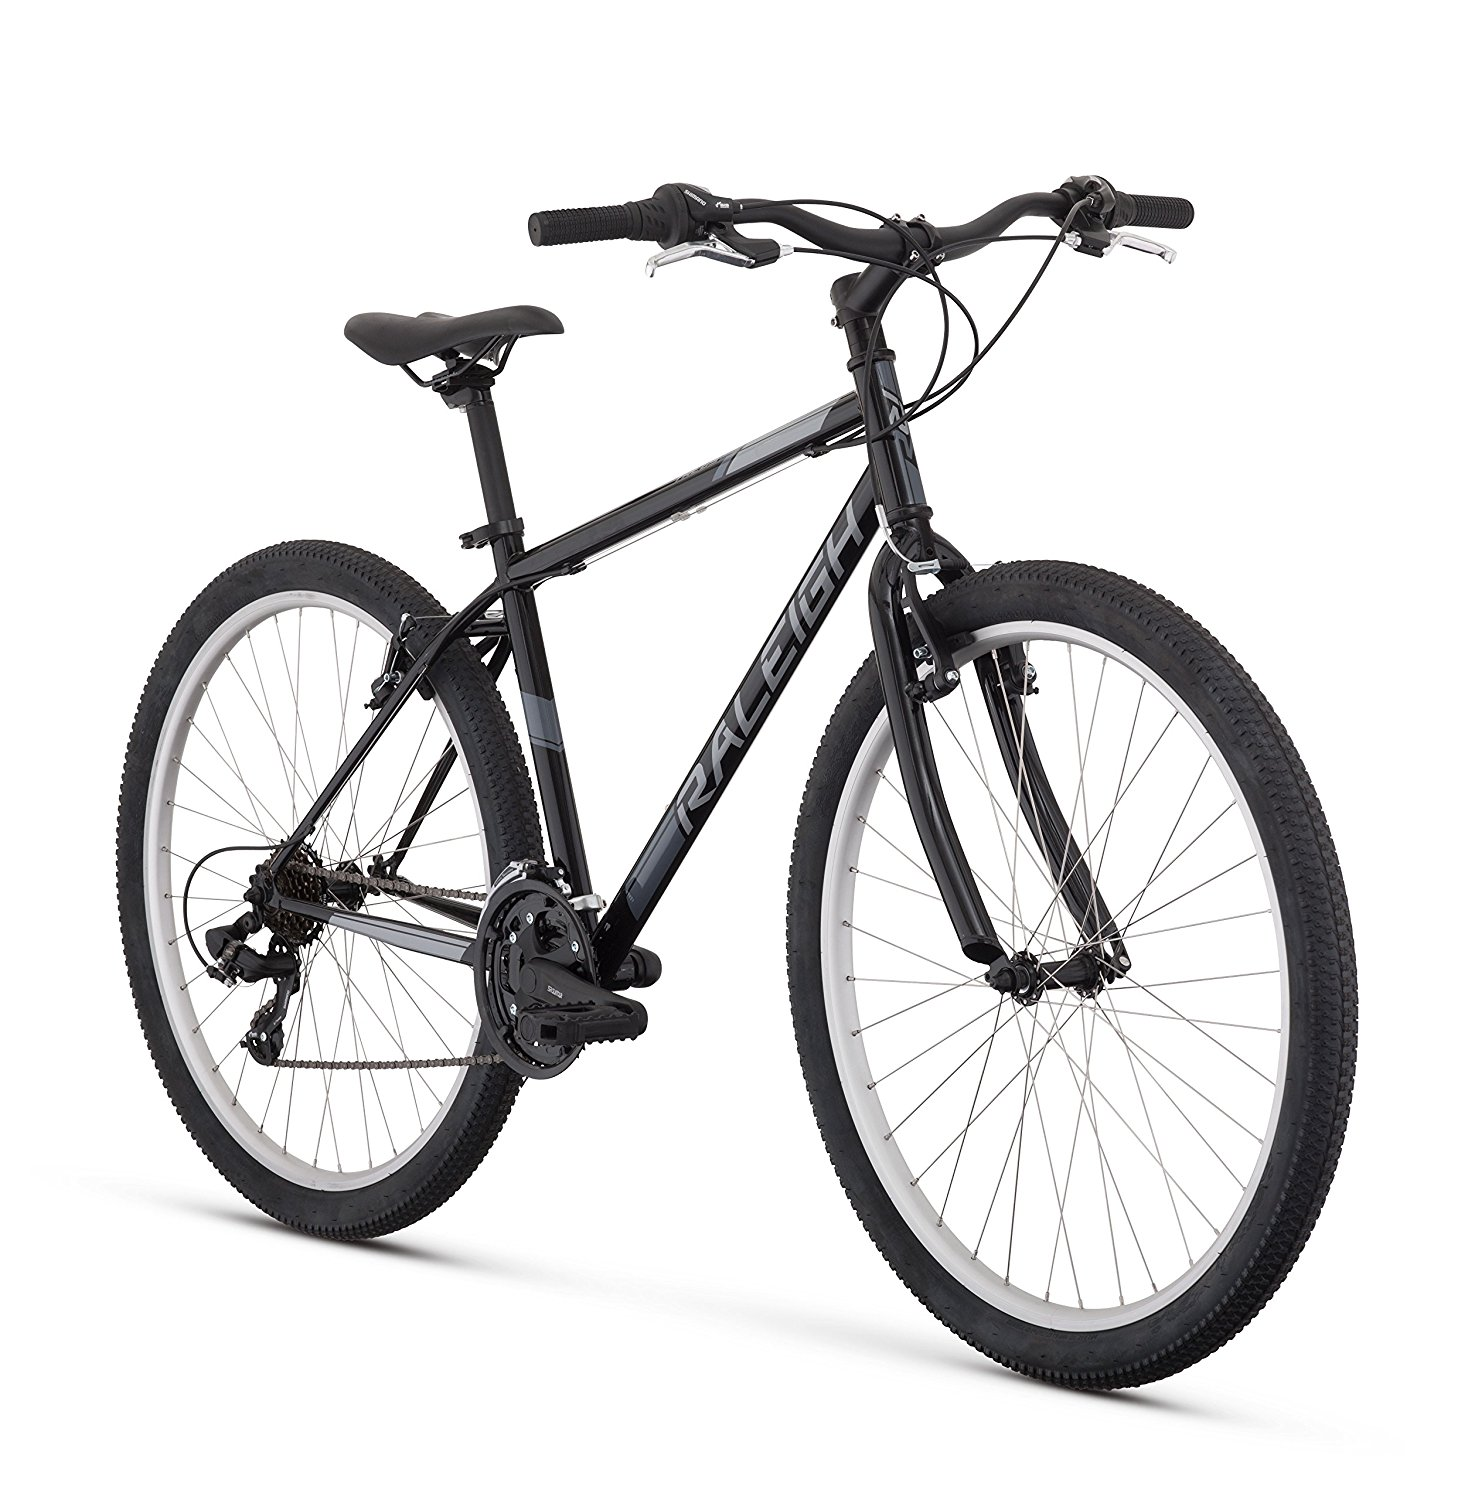 Raleigh Talus 1 Mountain Bike Review